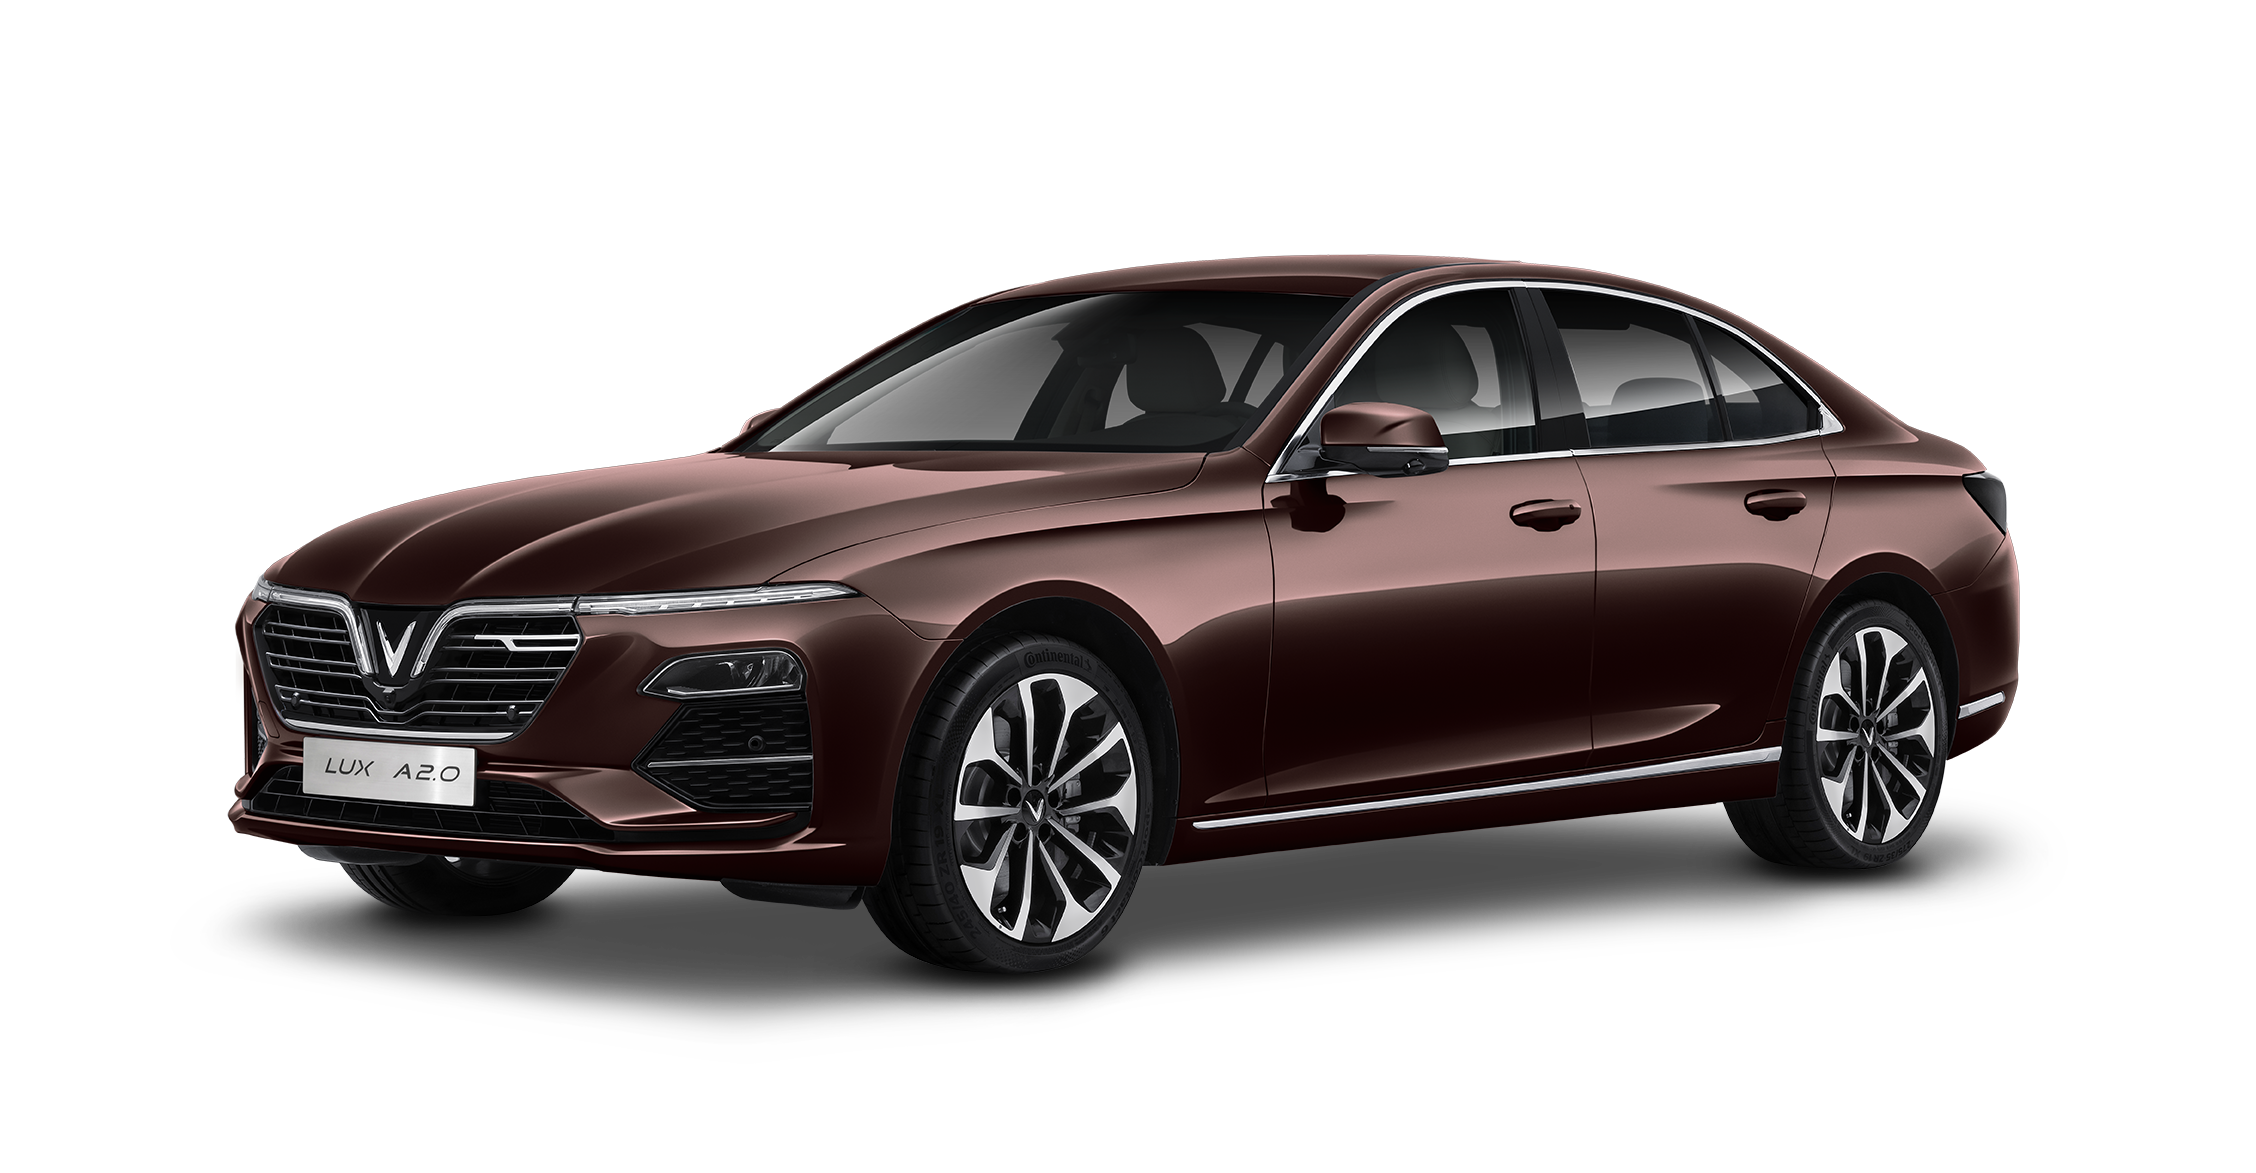 LUX A M2 (Brown)